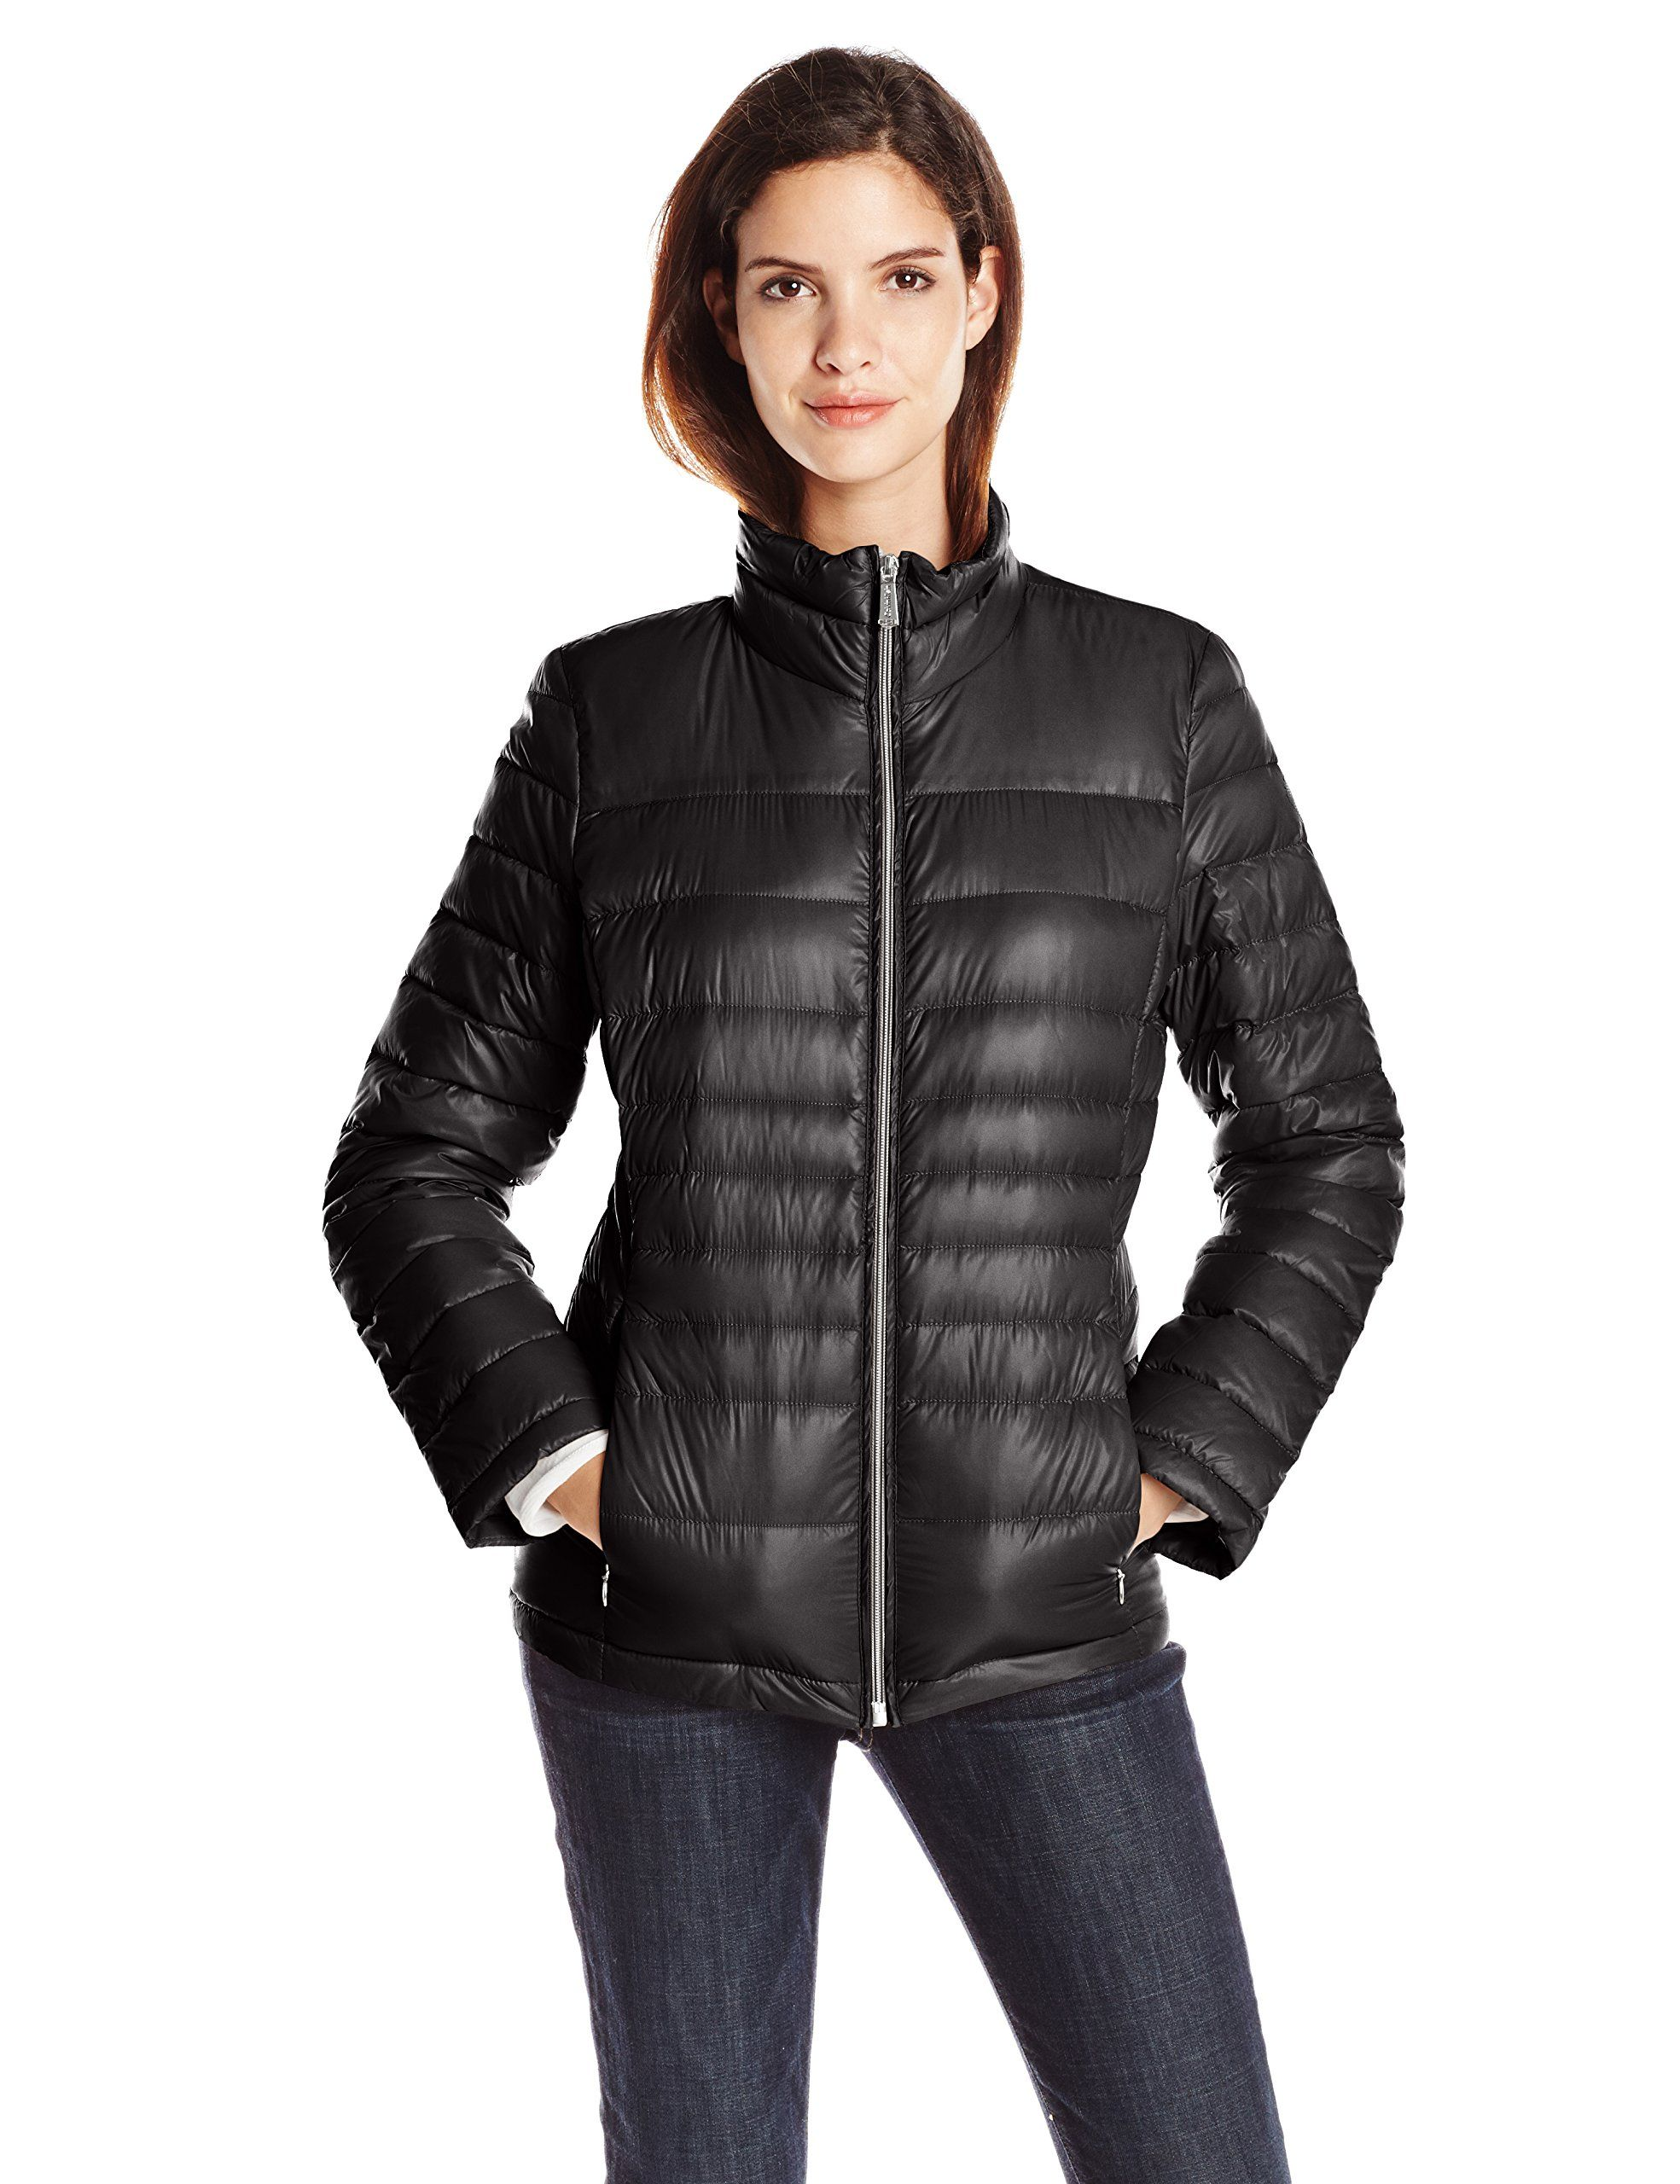 18ec9180c9ddcf Calvin Klein Women's CK Classic Short Packable Jacket at Amazon Women's  Coats Shop